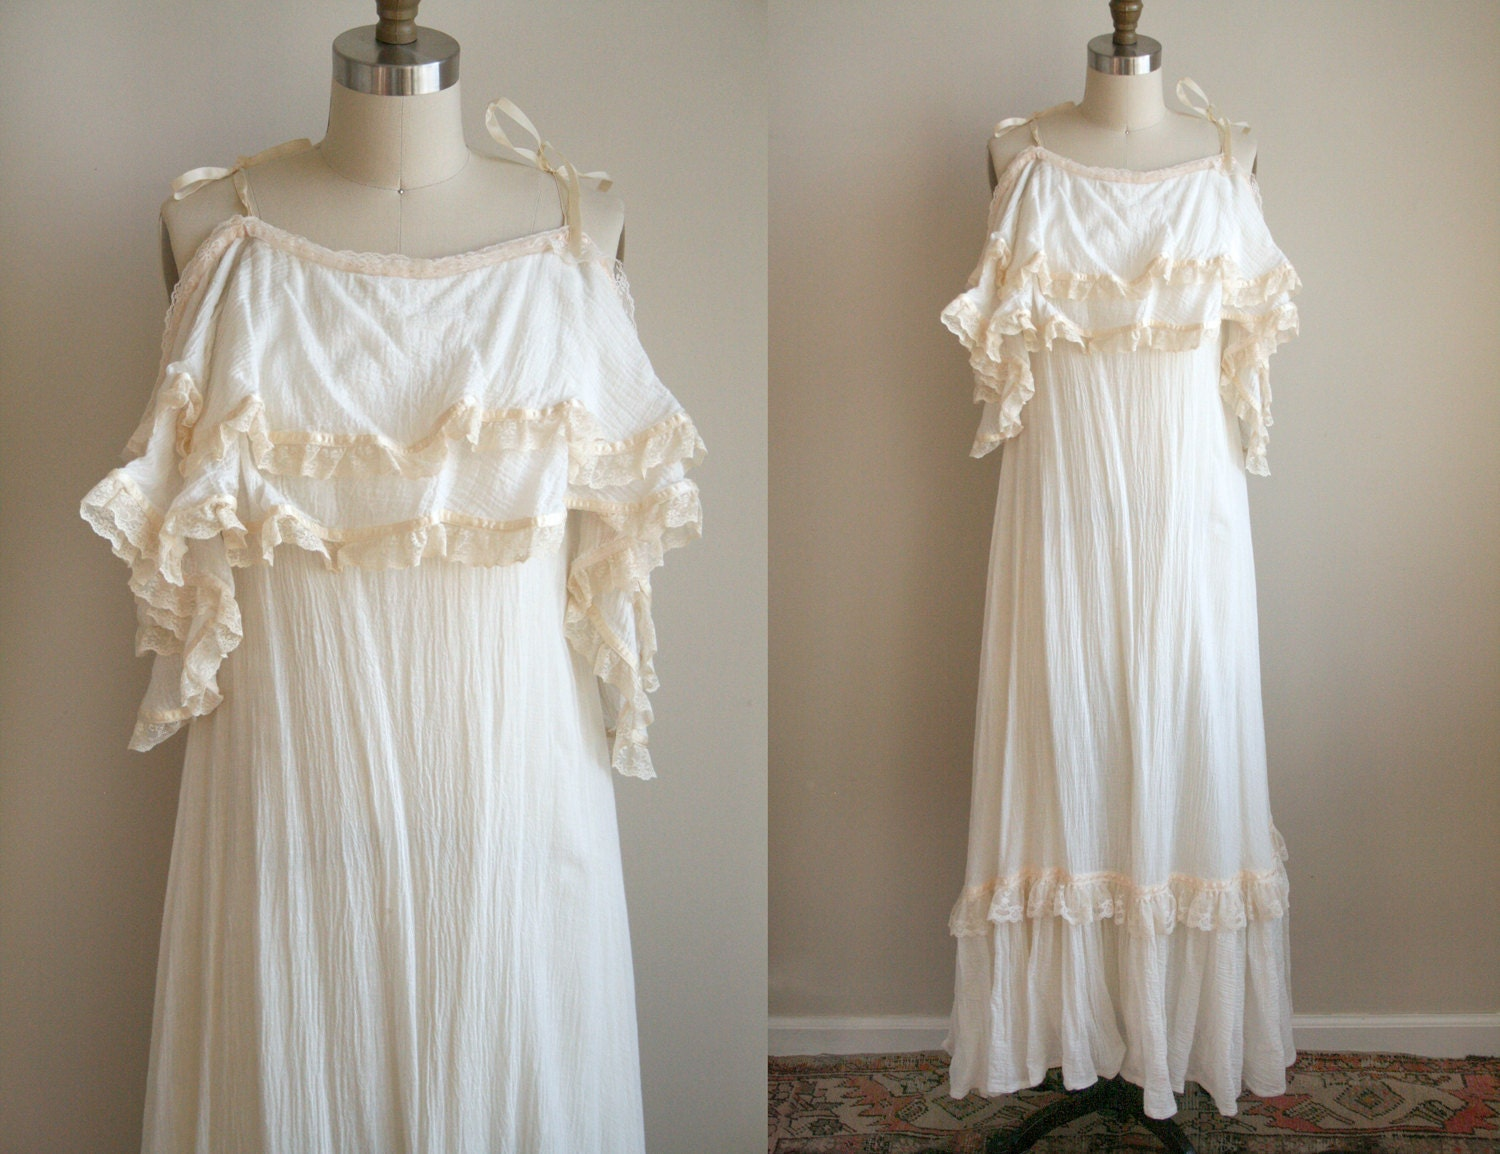 Vintage Mexican Wedding Dresses For  : Mexican wedding dresses